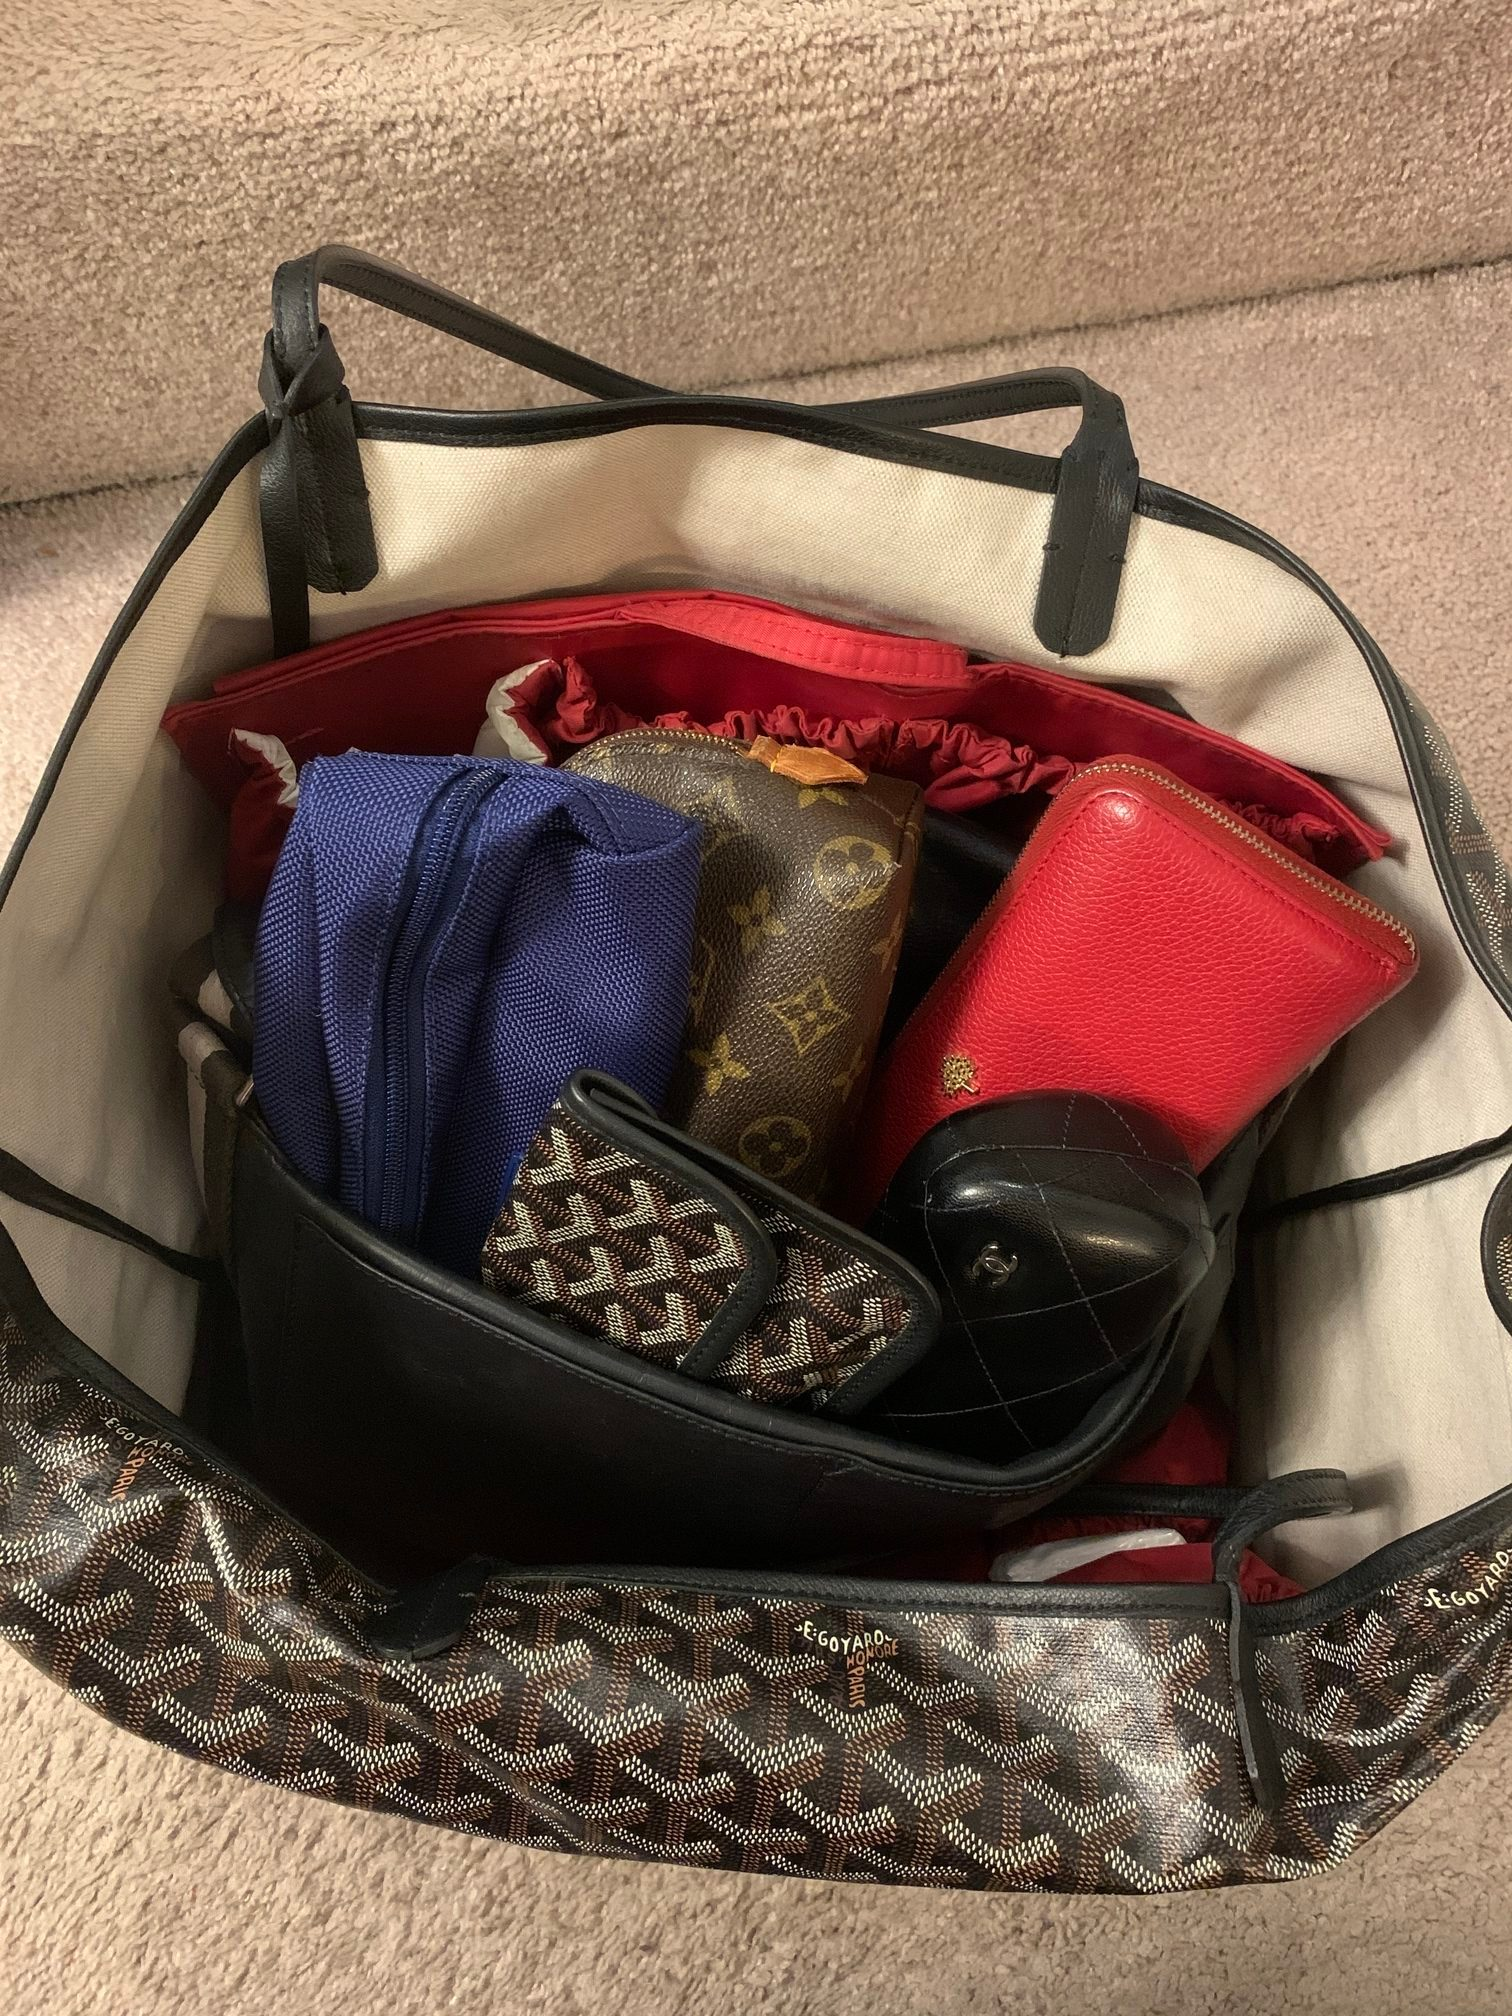 purse with smaller items pack international 2 weeks carry on